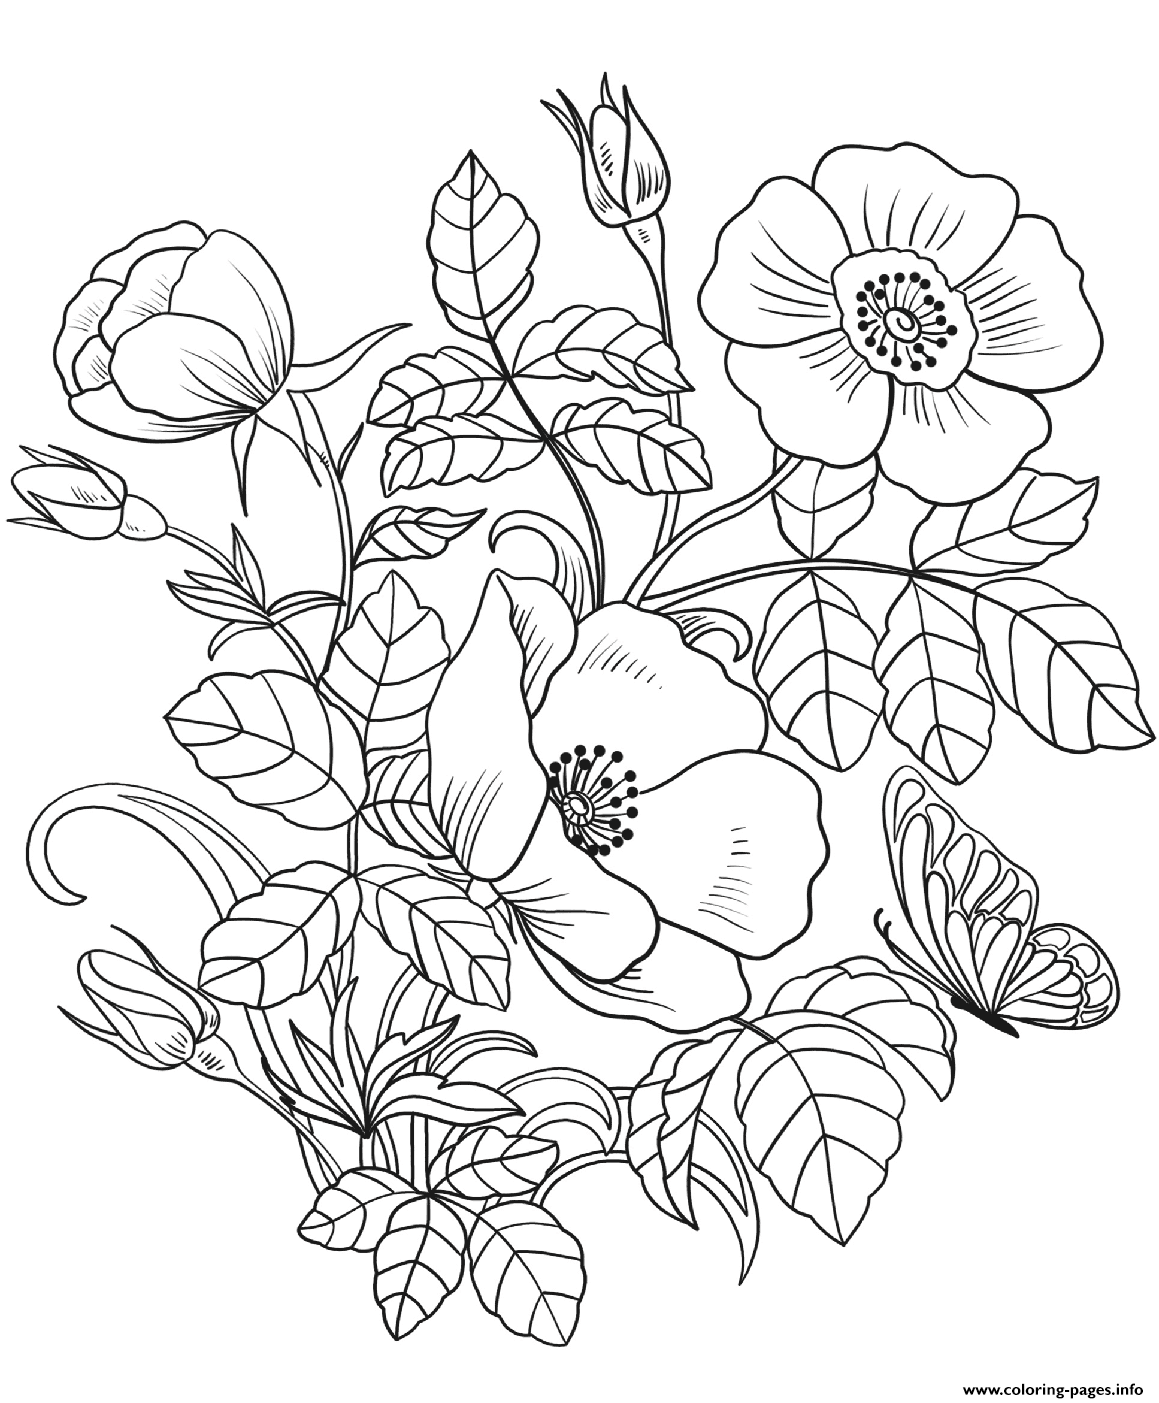 flower coloring pages printables free printable flower coloring pages for kids coloring pages flower printables